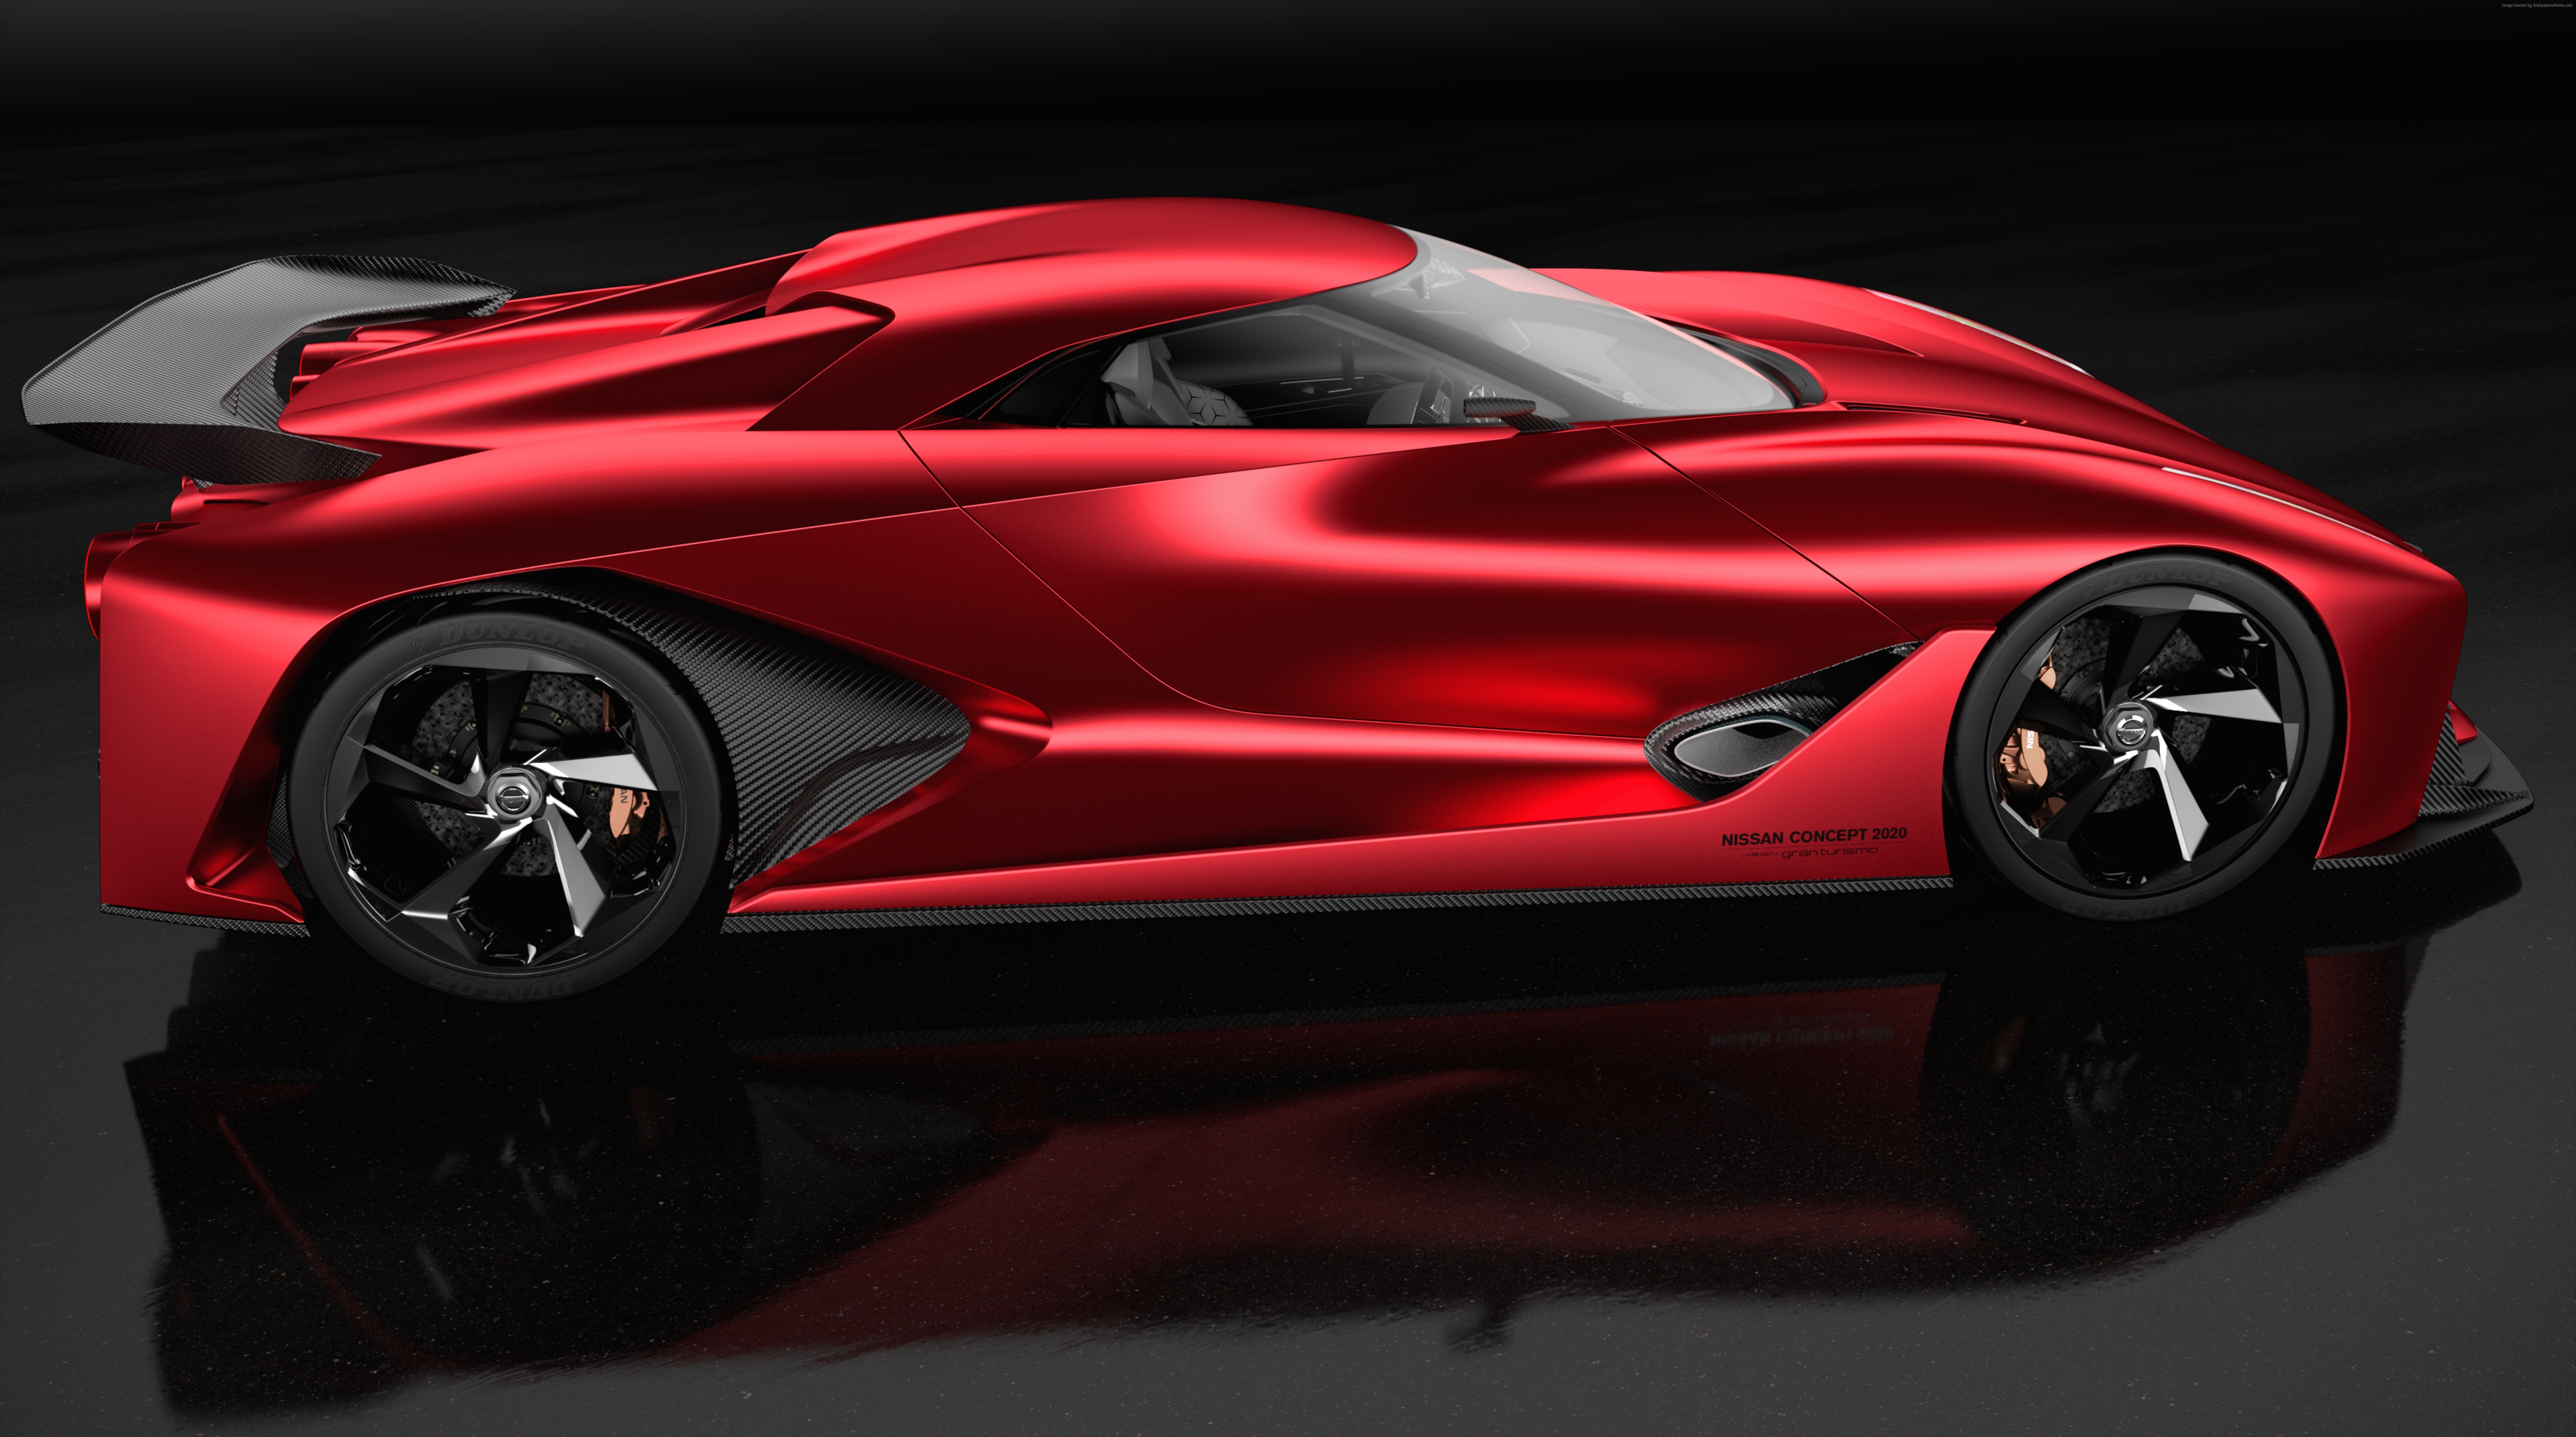 8344x4656 - Nissan Concept Wallpapers 26